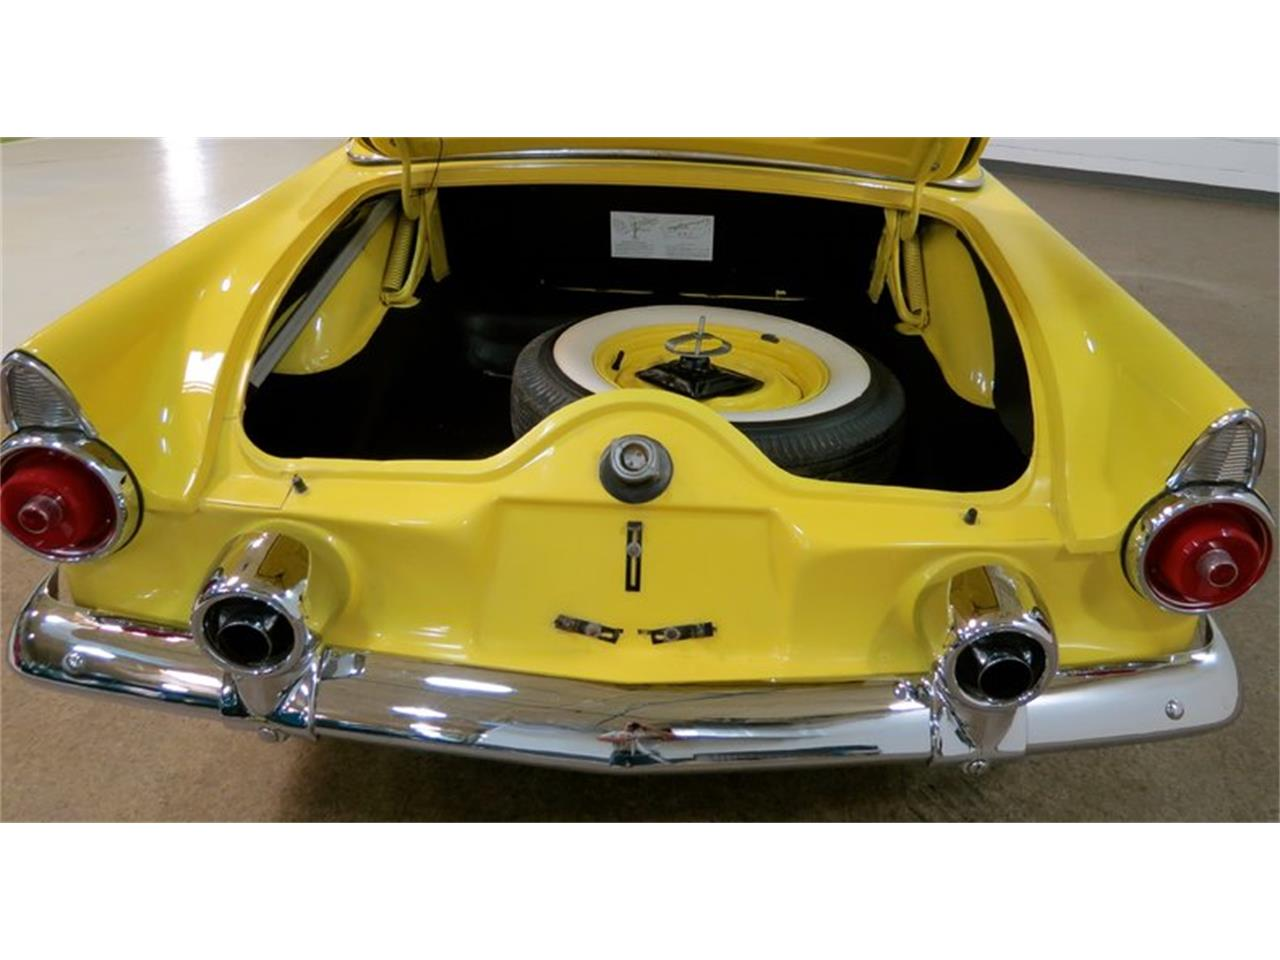 Large Picture of 1955 Ford Thunderbird - $36,995.00 - FHWX